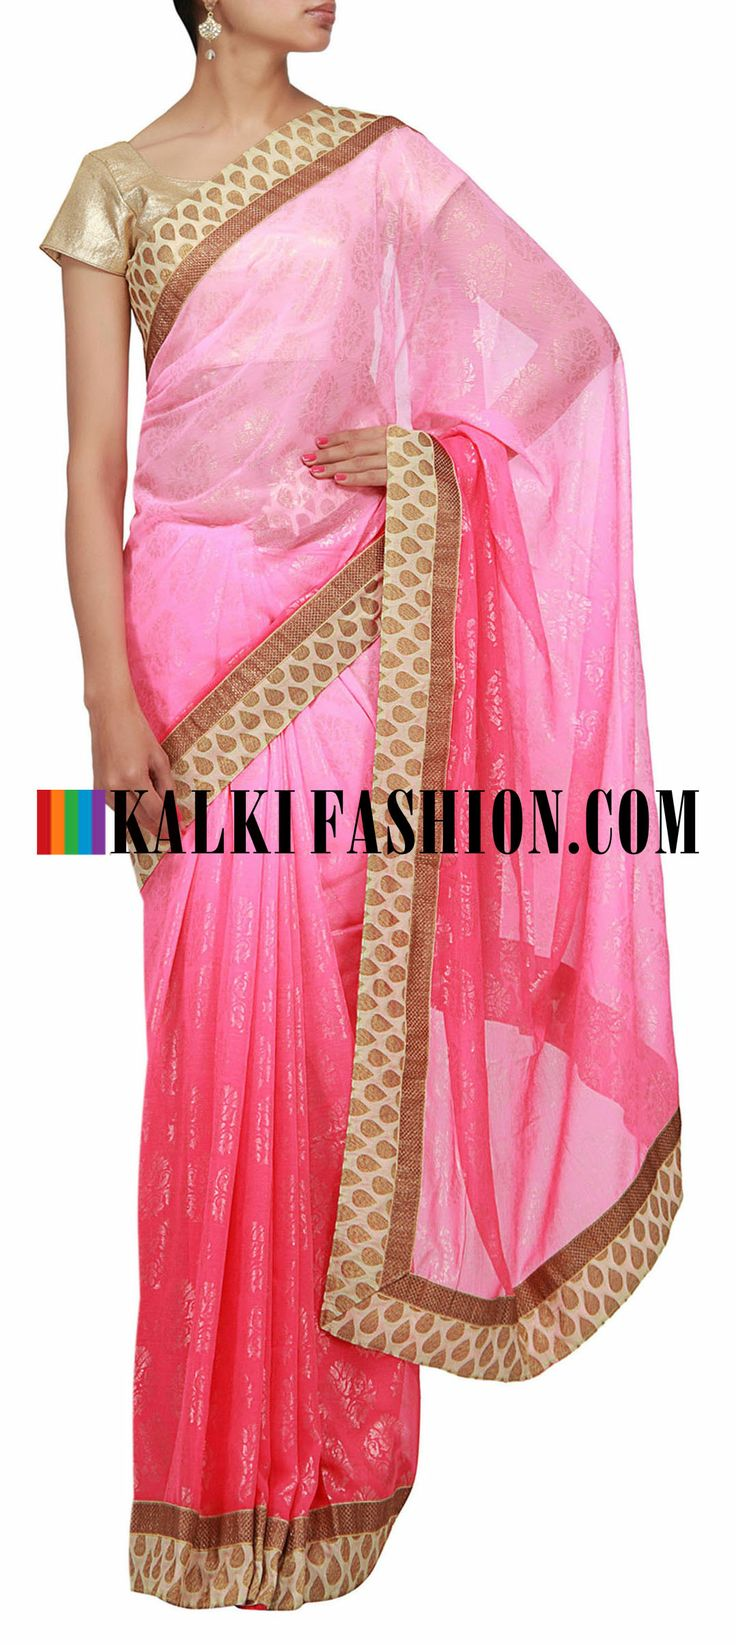 Buy Online from the link below. We ship worldwide (Free Shipping over US$100) http://www.kalkifashion.com/shaded-saree-in-pink-with-foil-print.html Shaded saree in pink with foil print